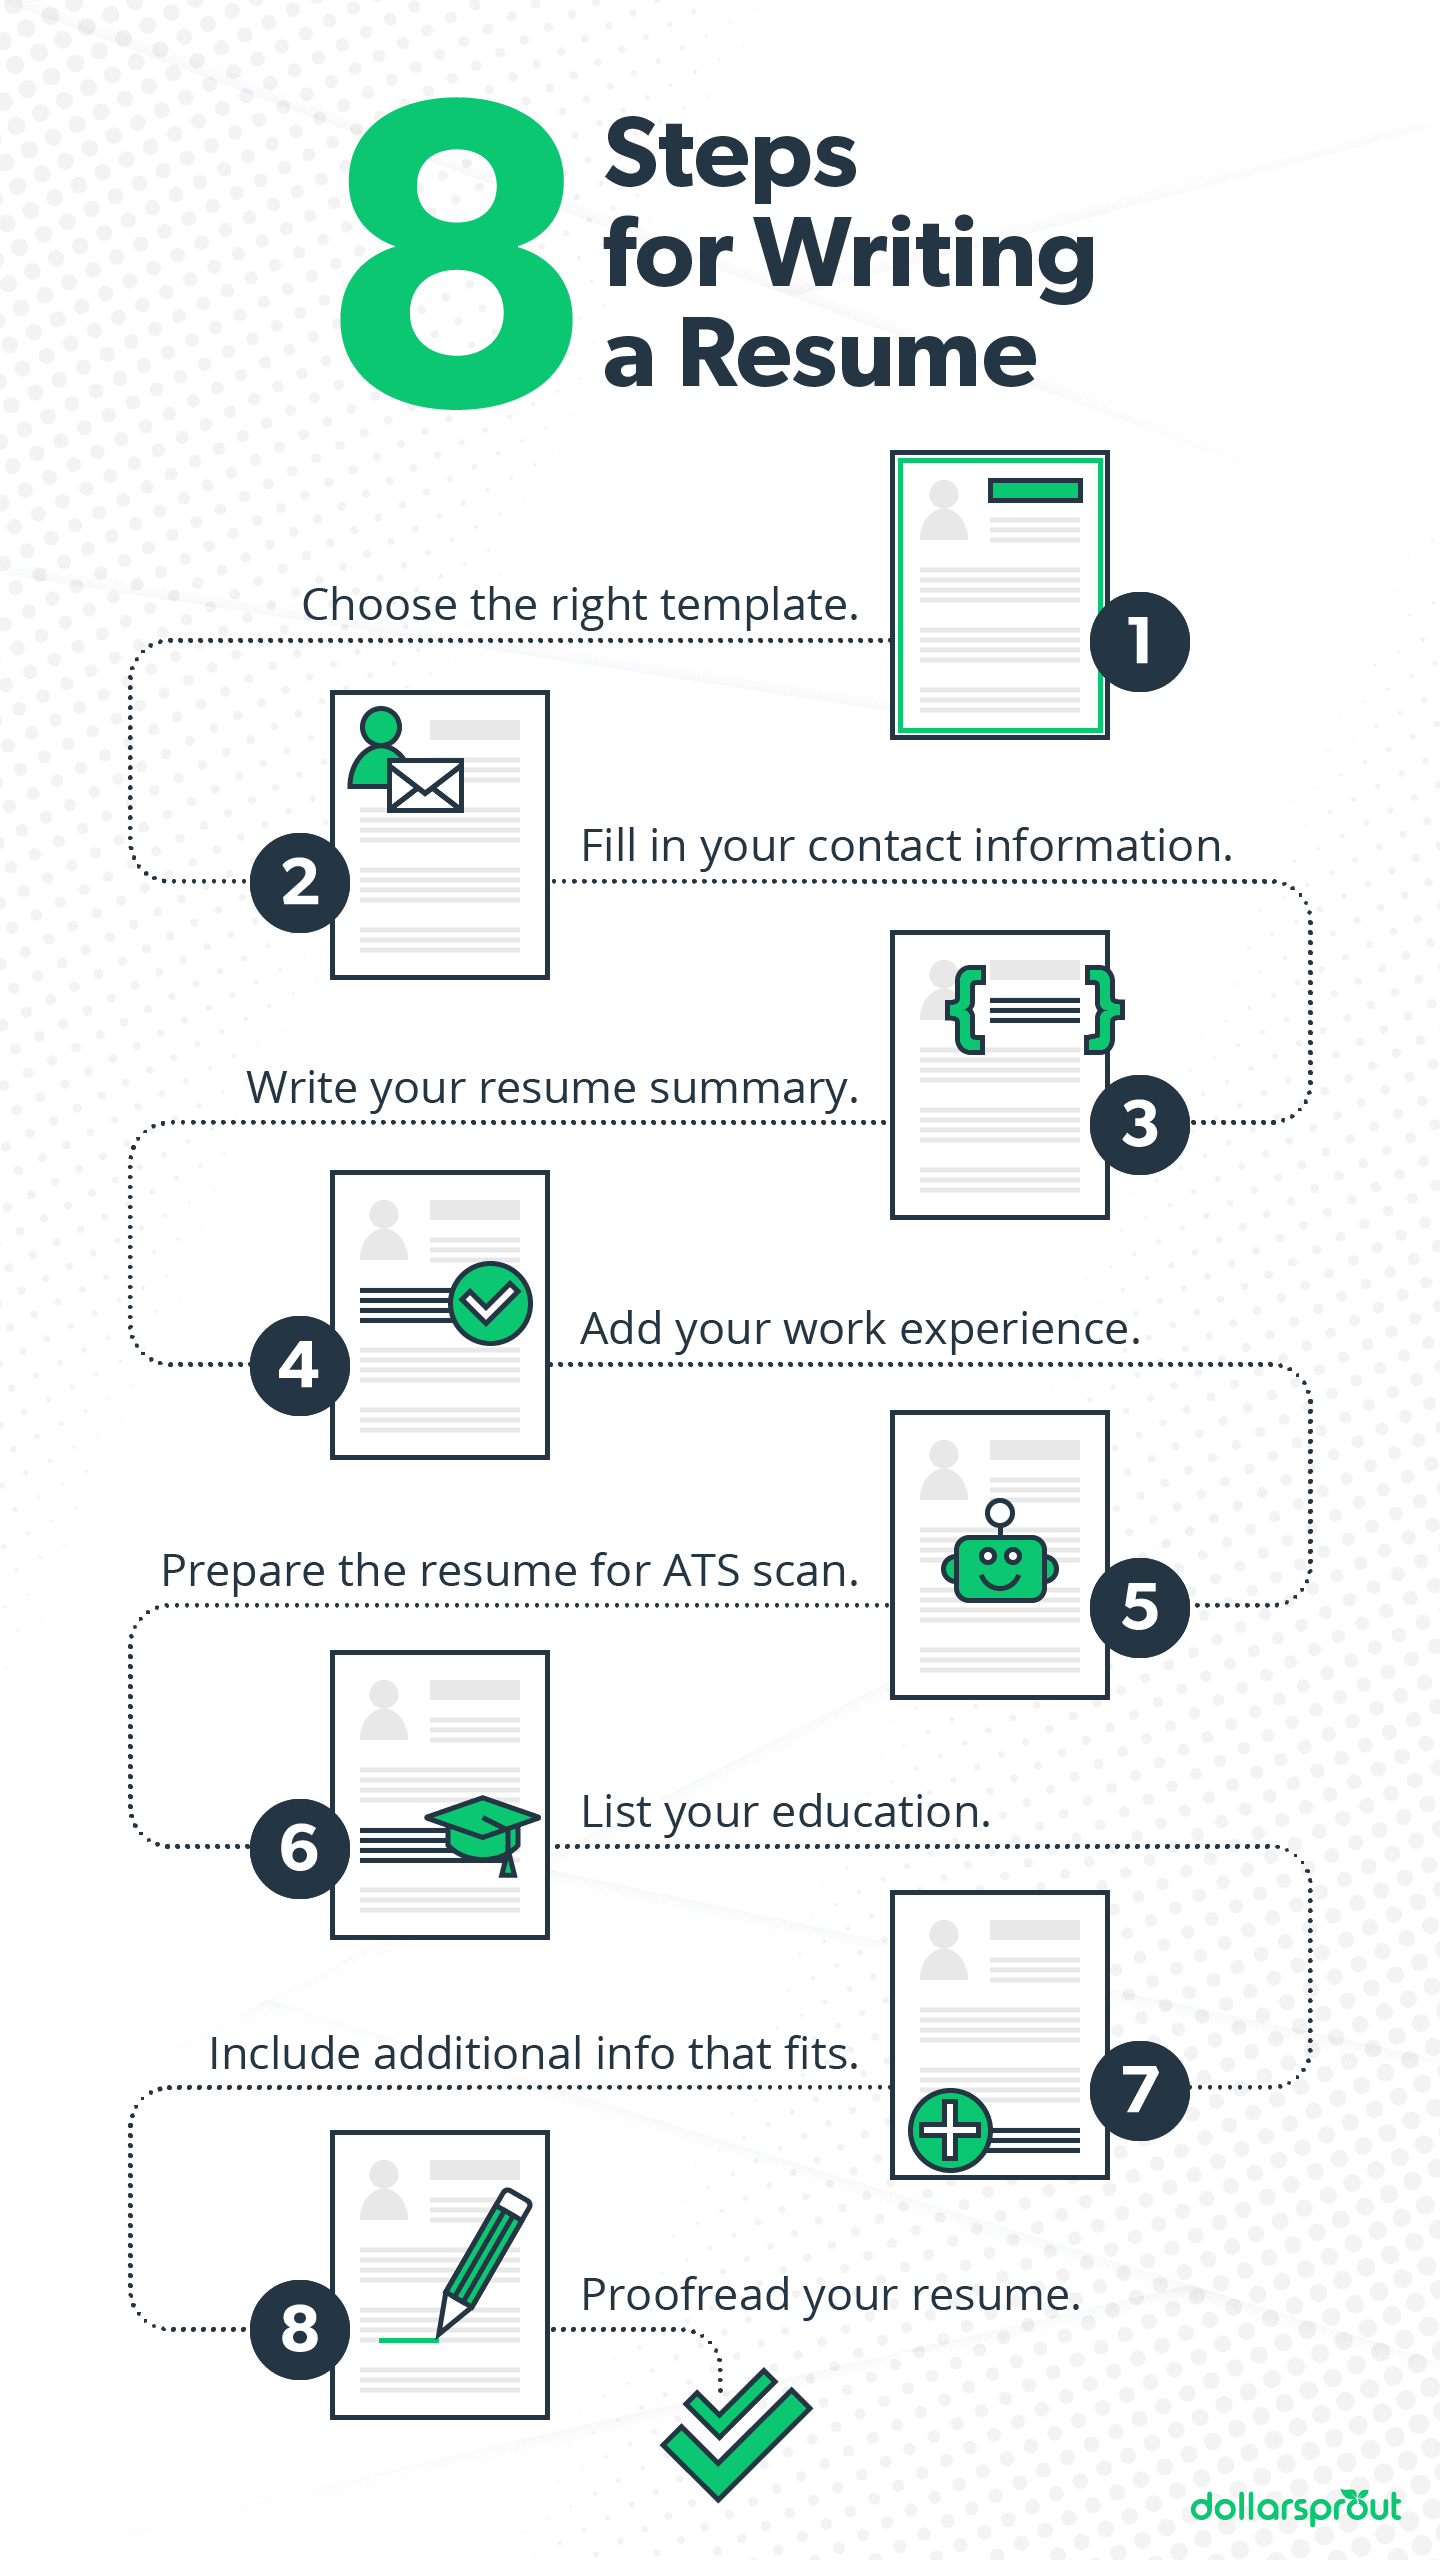 8 Steps for Writing a Resume